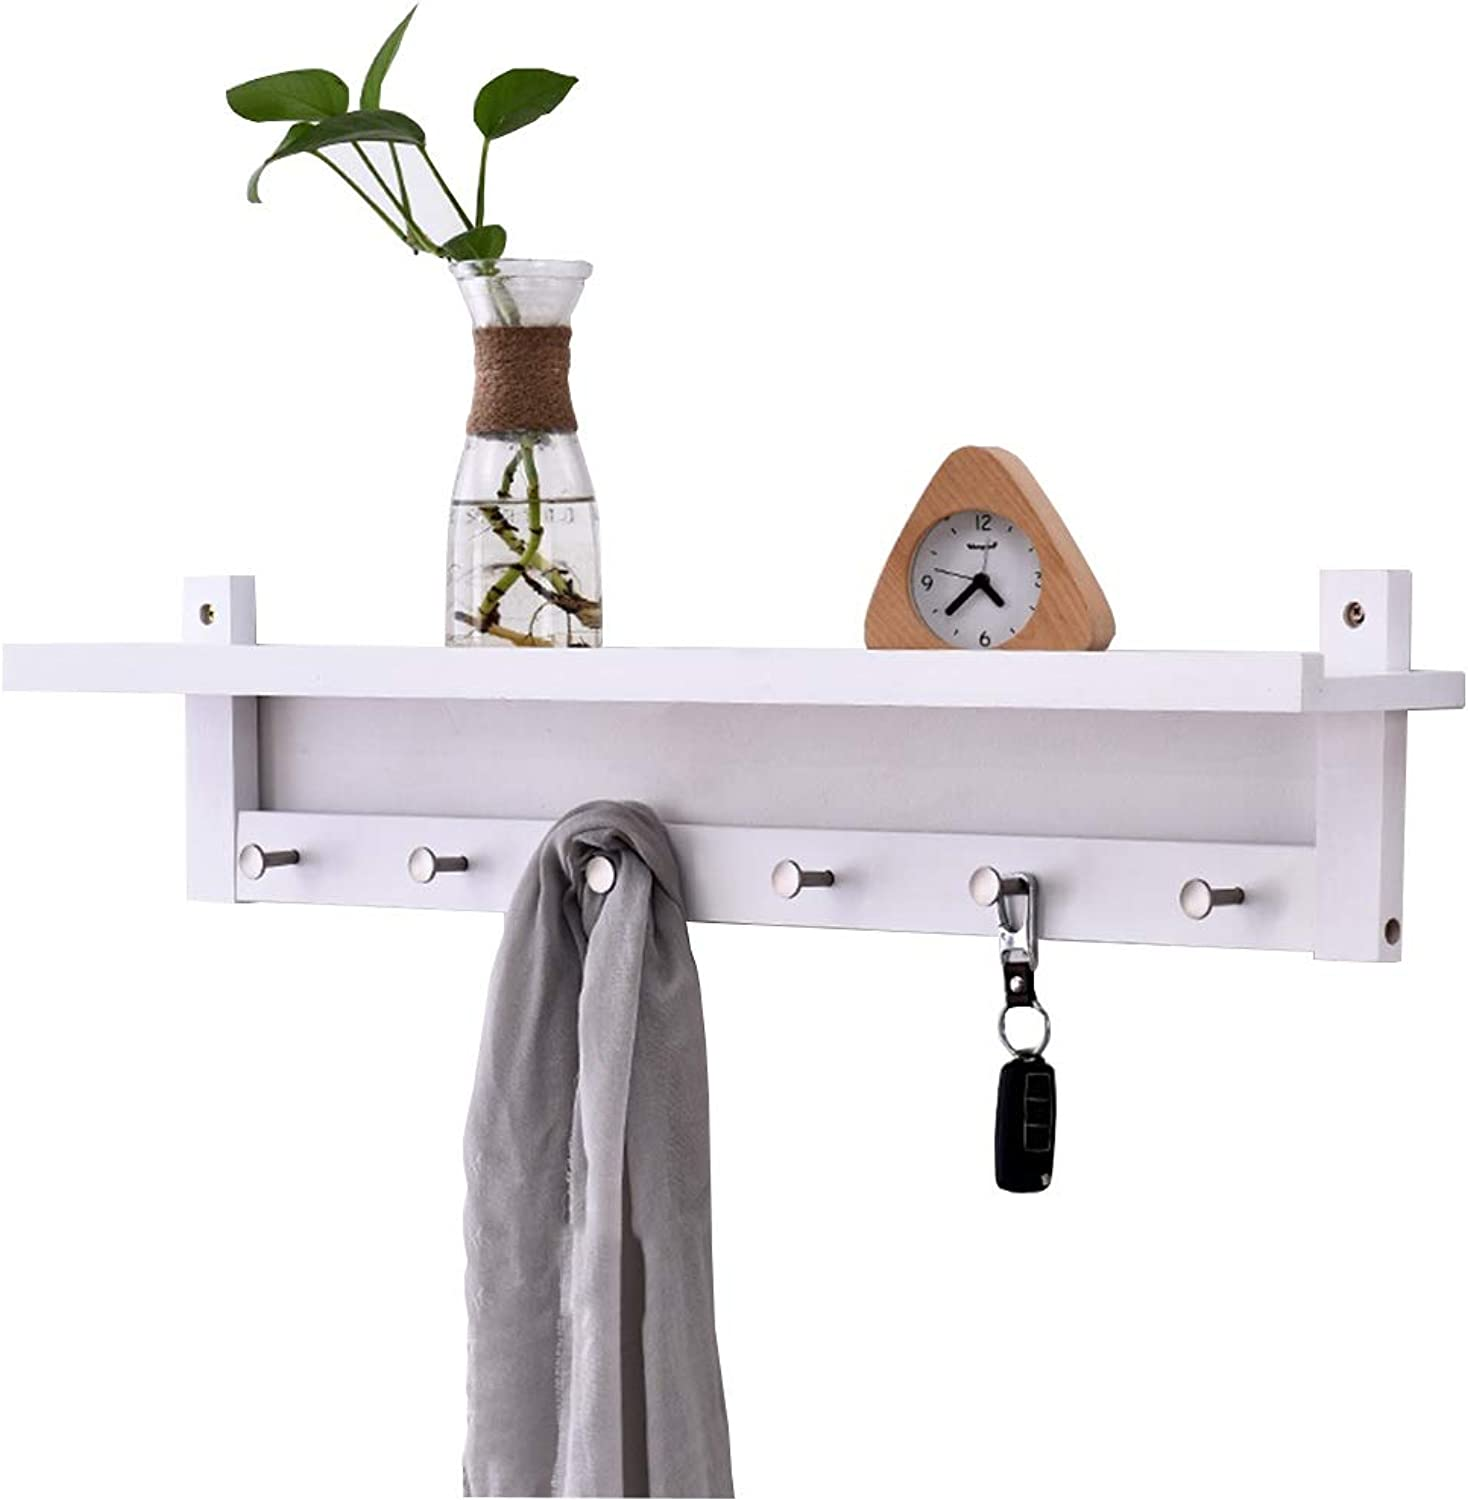 Feifei Coat Rack Solid Wood Creative Wall-Mounted Decorative Frame Multi-Function White Storage Rack Hanger, 4 Sizes (Size   86  12  18cm)